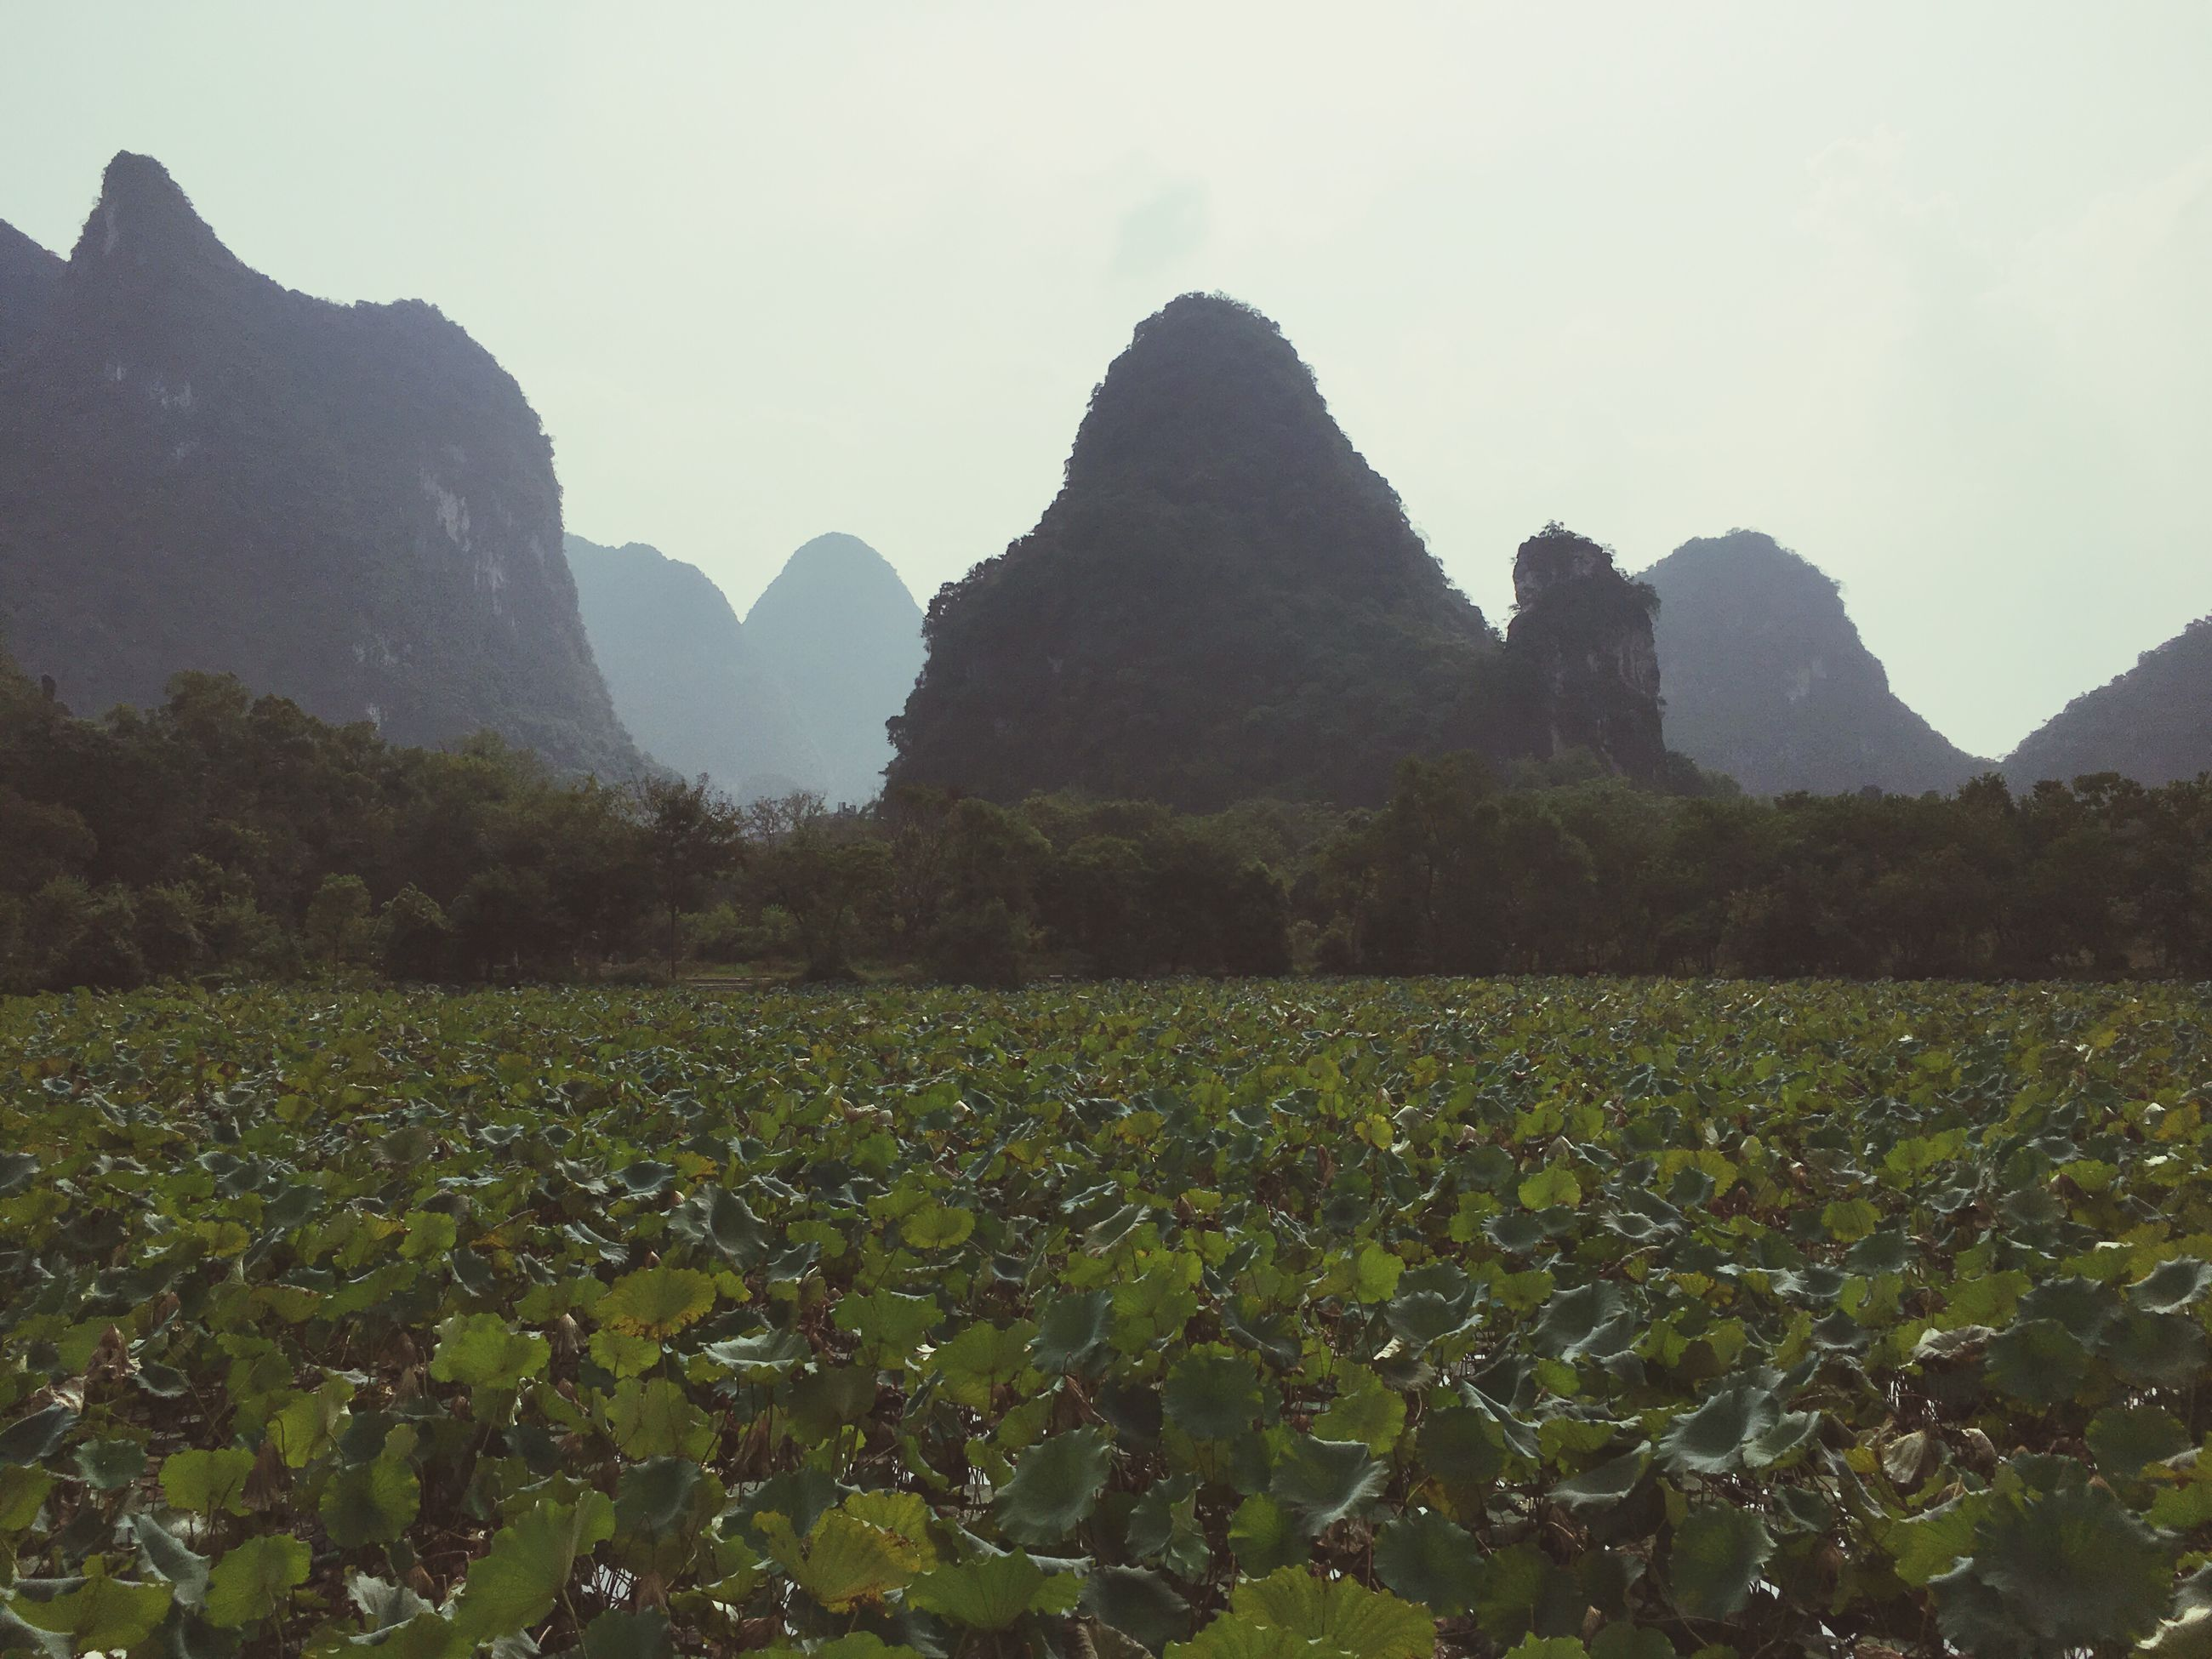 tranquil scene, scenics, beauty in nature, tranquility, clear sky, landscape, mountain, plant, nature, green color, agriculture, rock formation, growth, flower, non-urban scene, mountain range, rocky, majestic, geology, non urban scene, rural scene, outdoors, farm, remote, sky, physical geography, mountain peak, no people, solitude